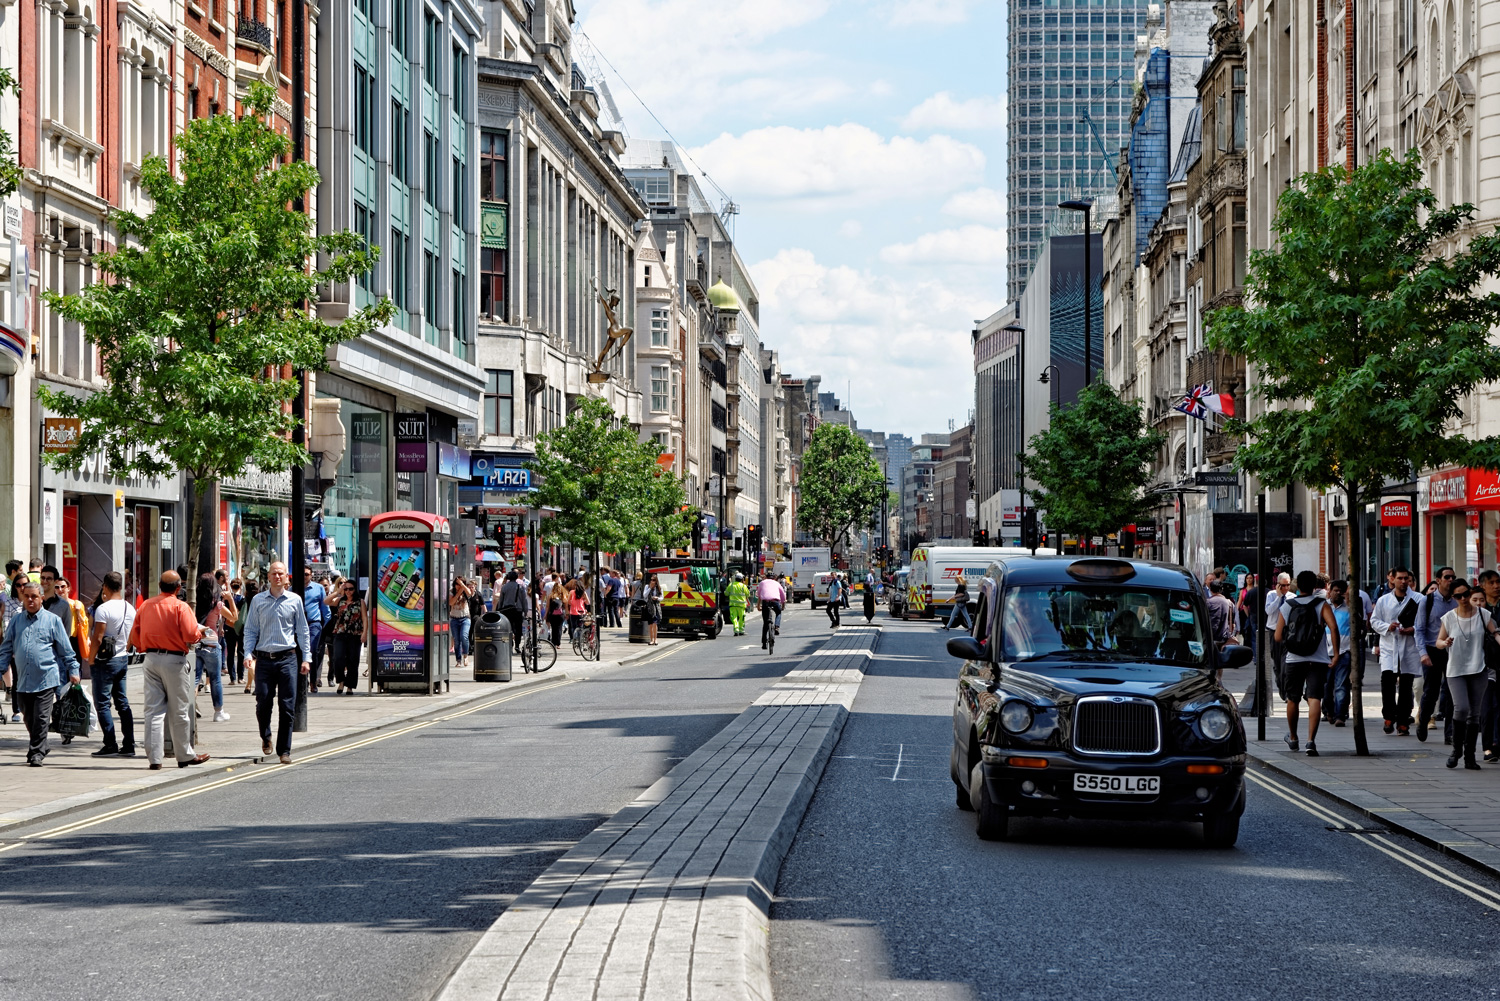 Shoppers on Oxford Street, London - the biggest shopping street in Europe